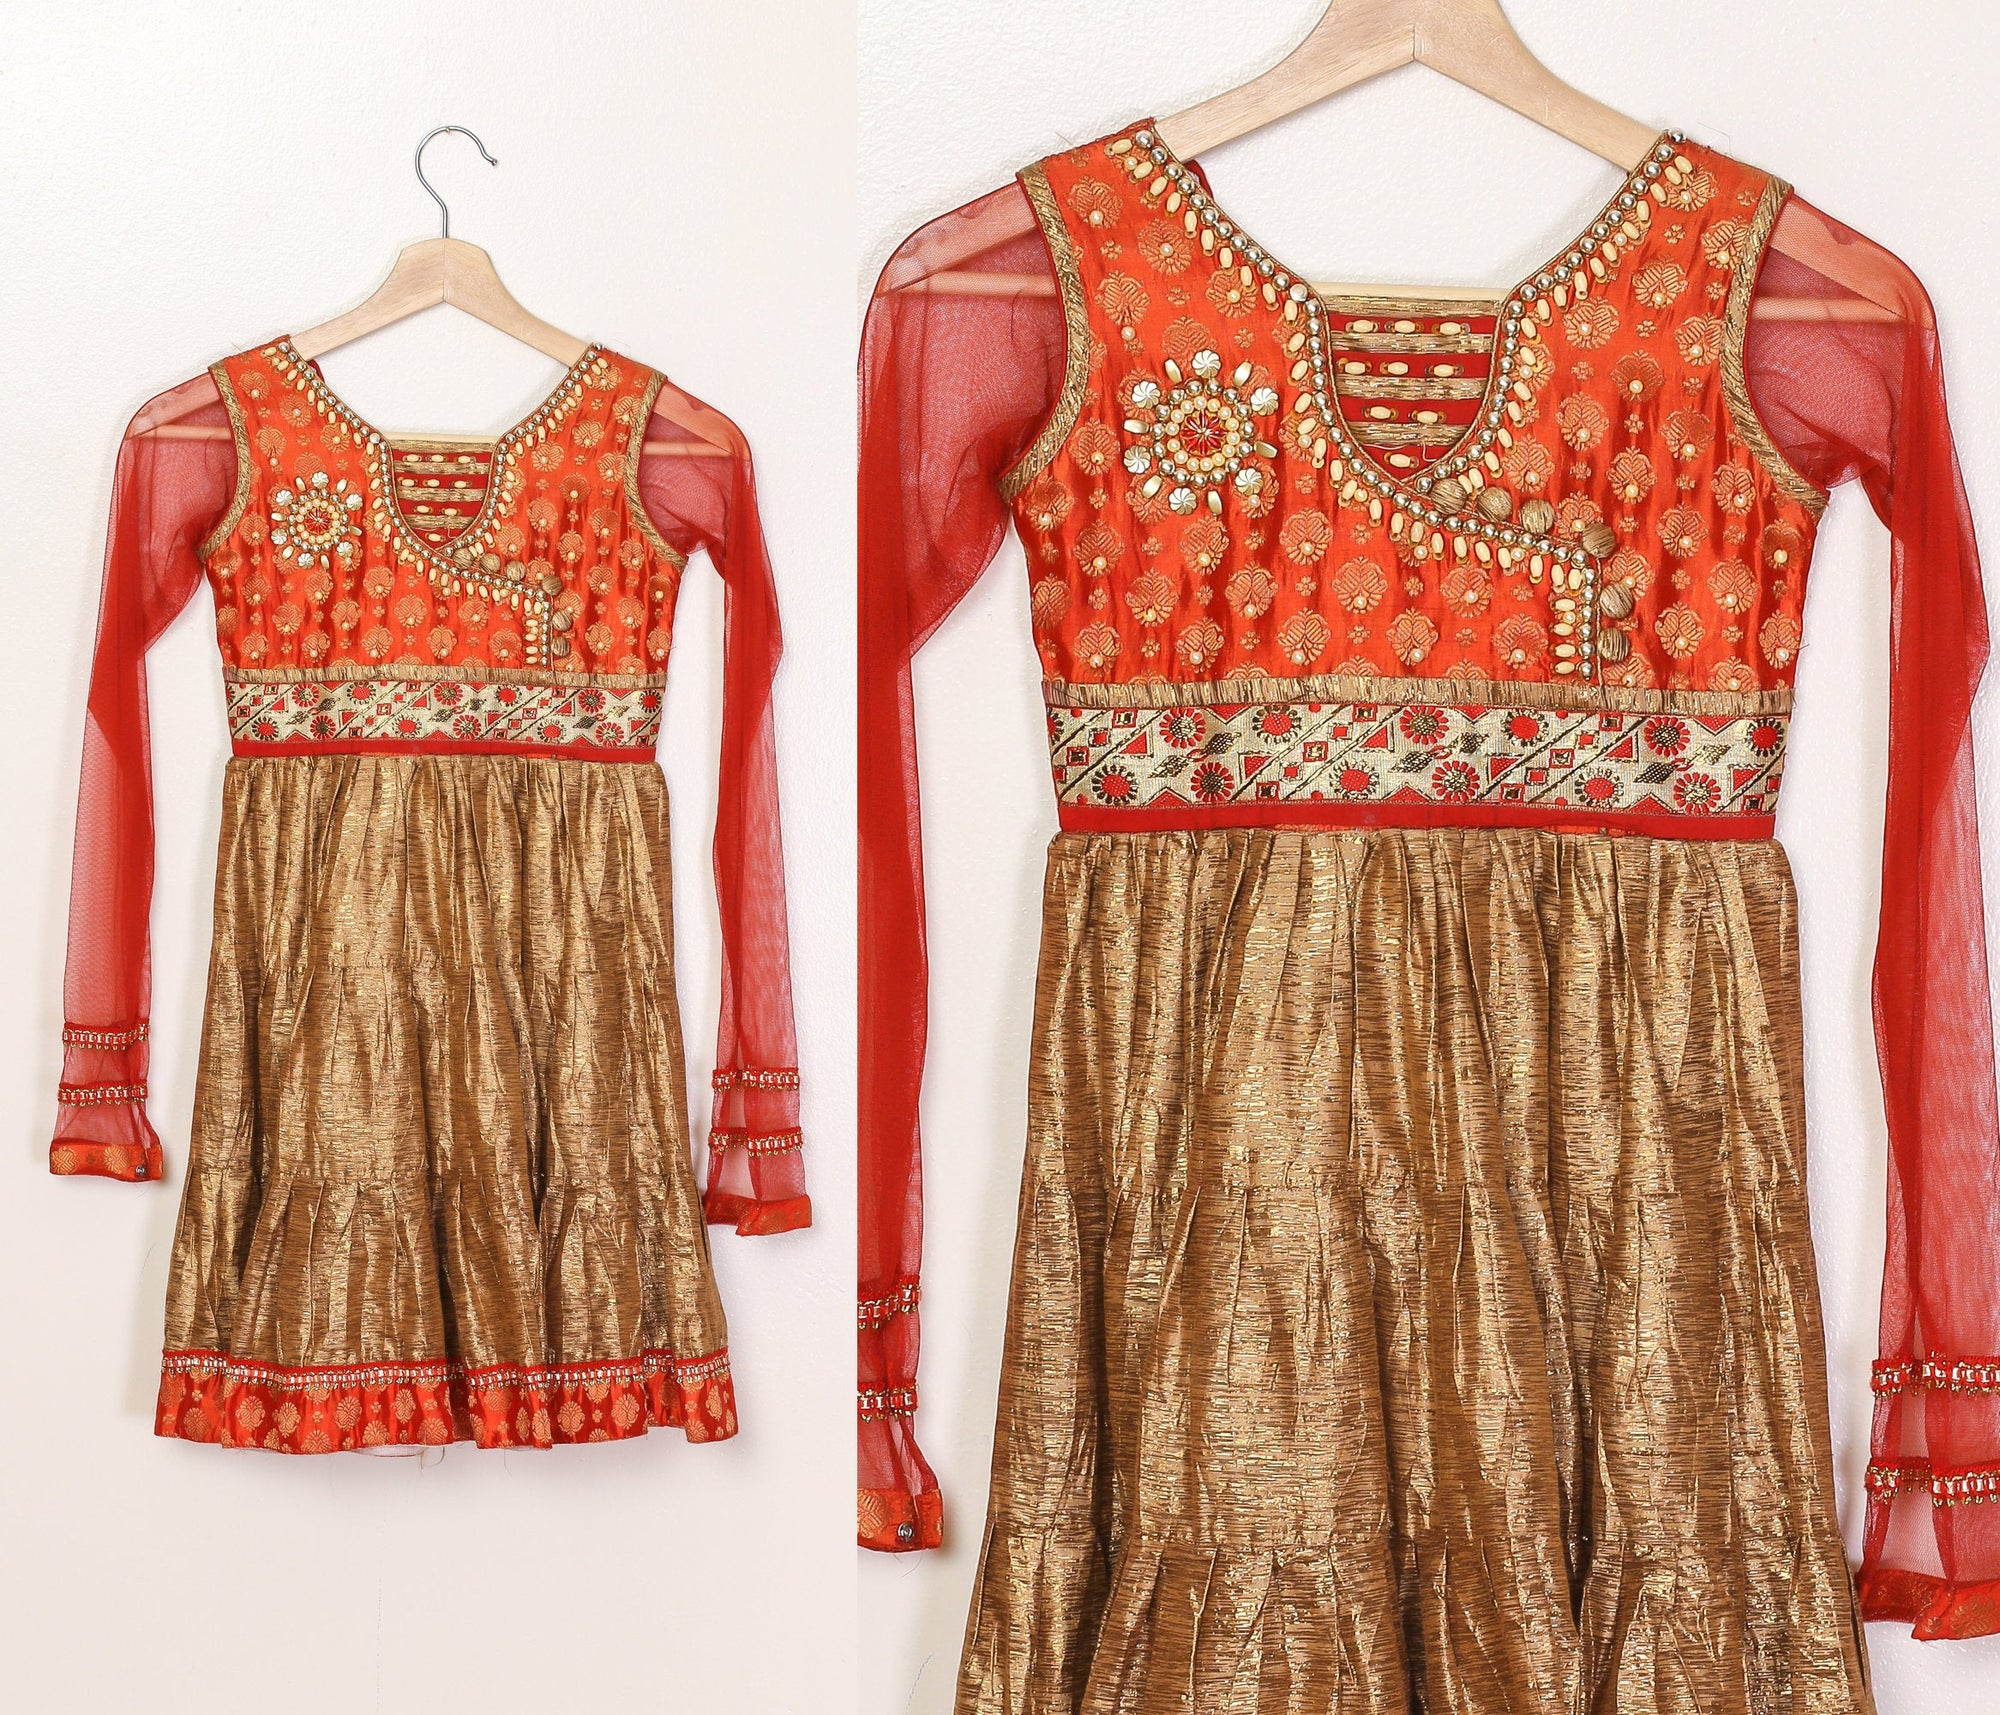 Vintage Indian Girls Dress - Size 6